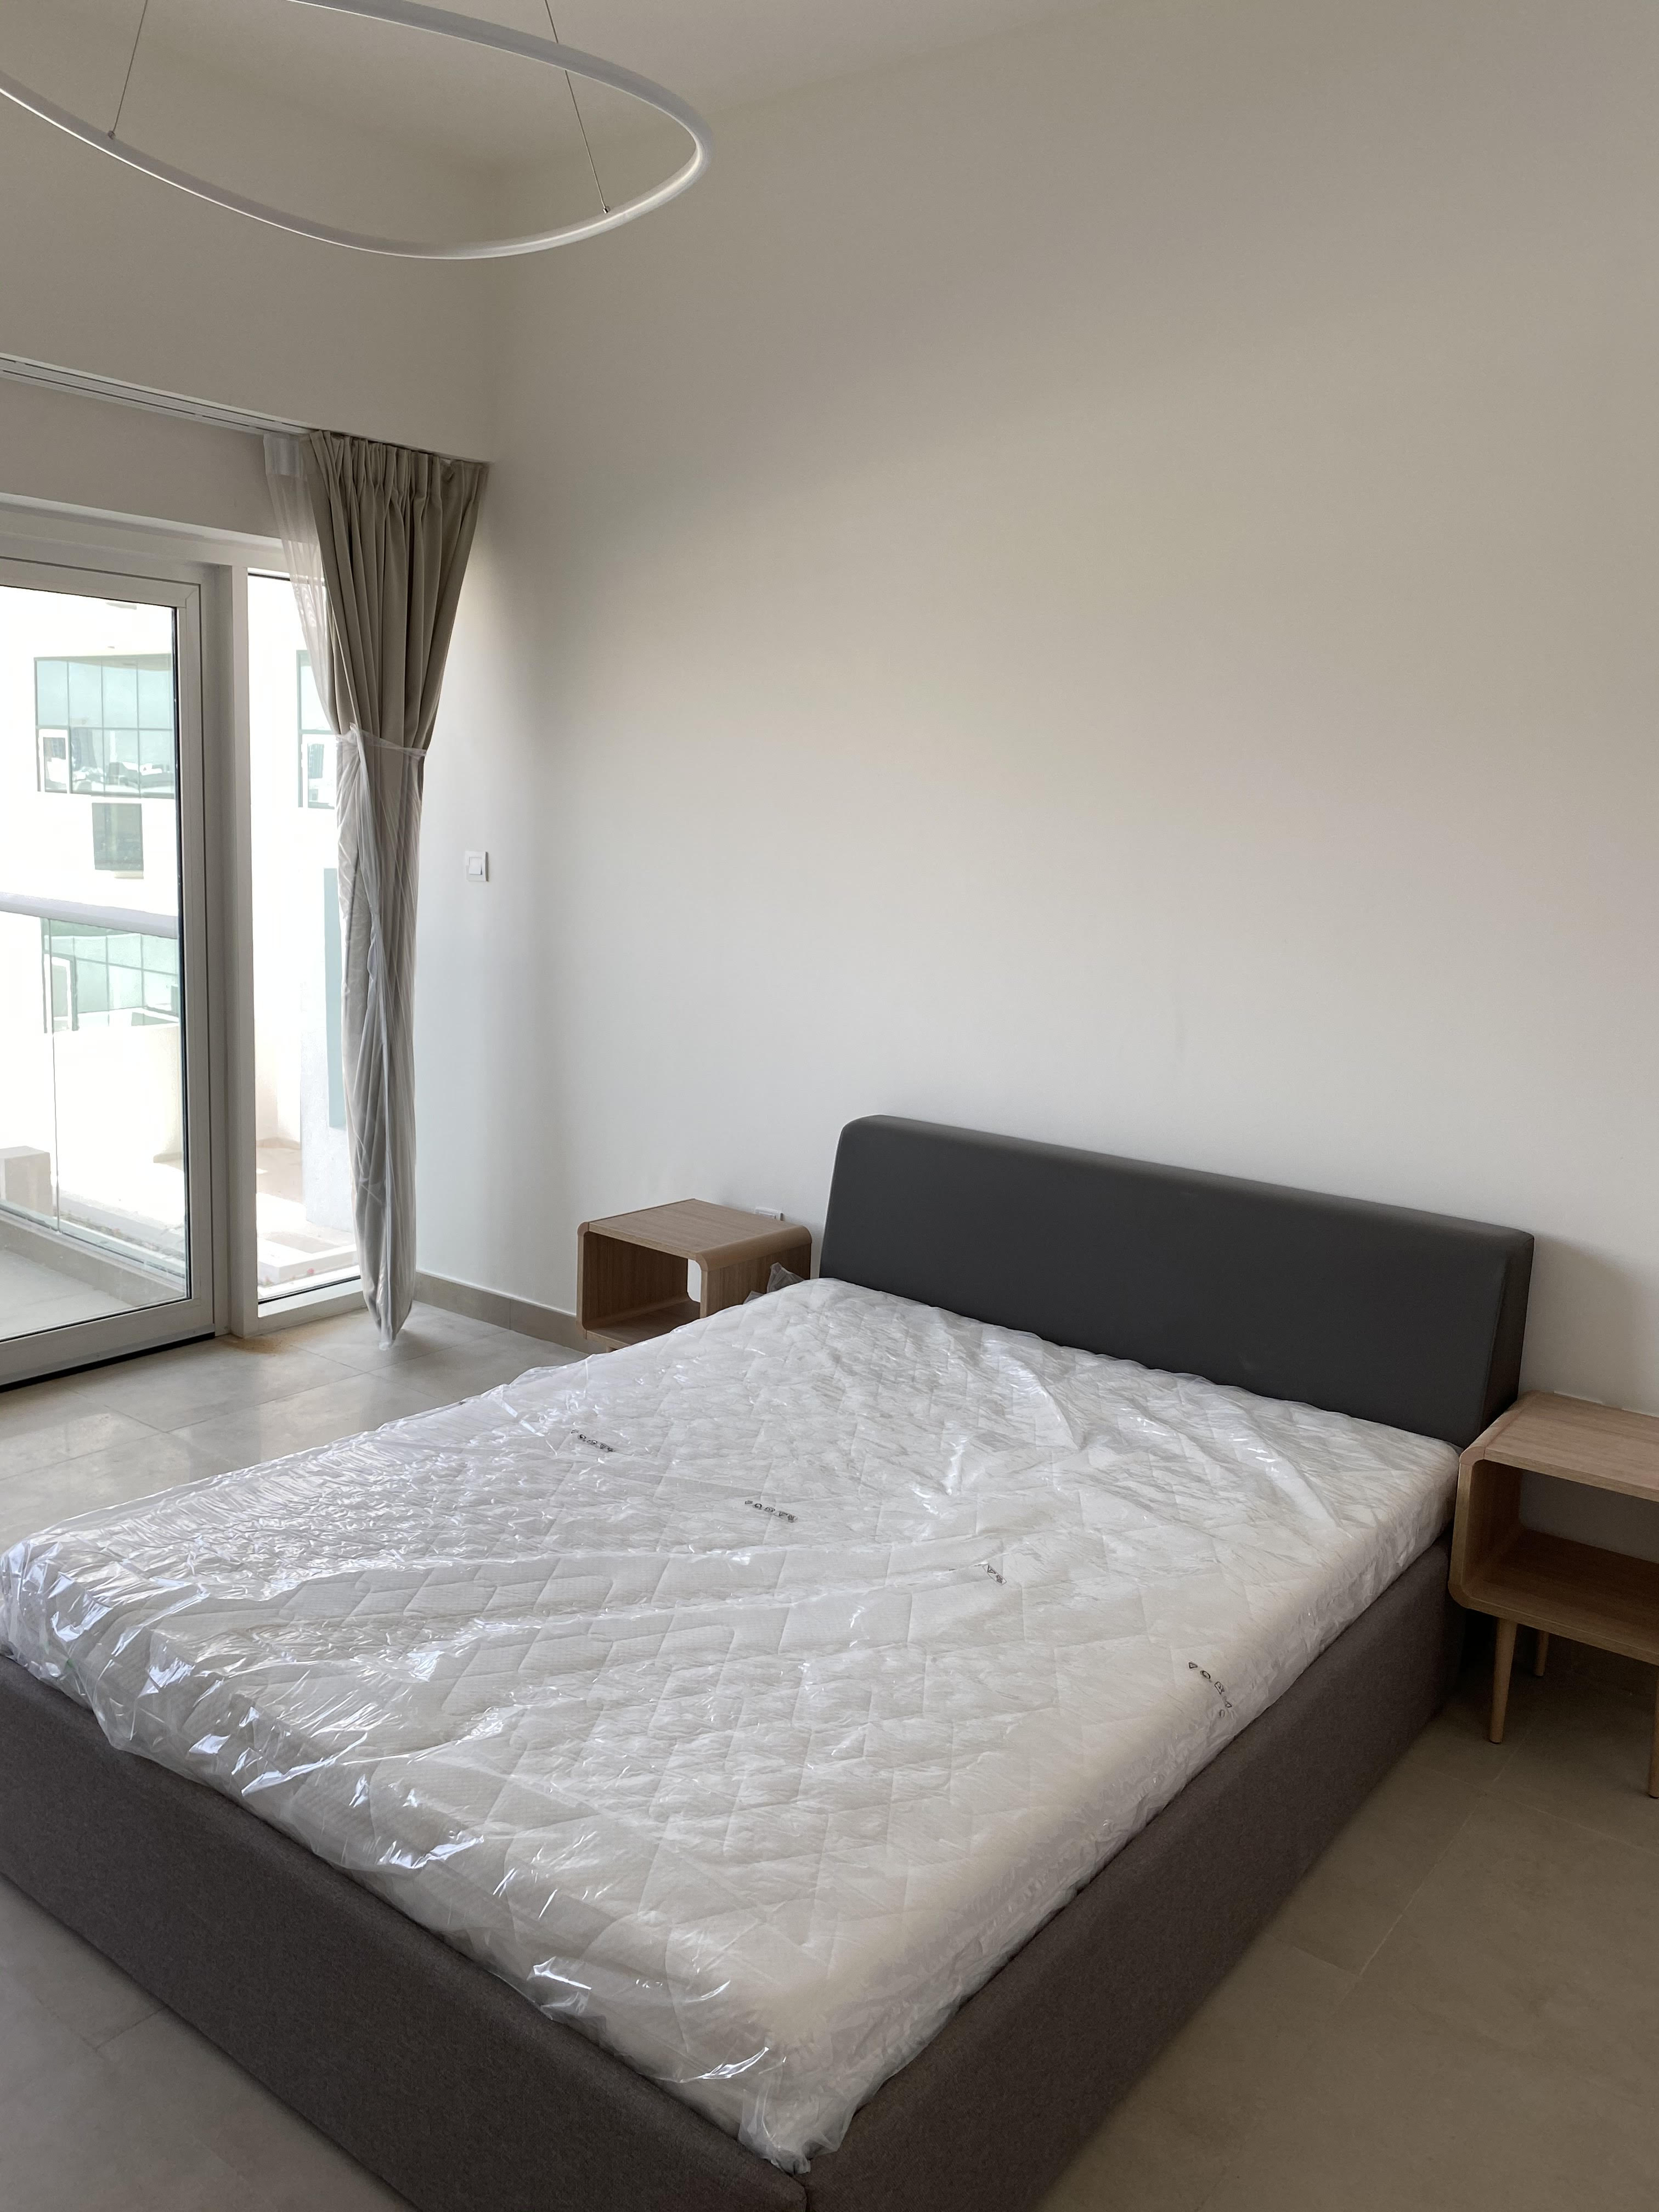 Queen Size Mattress, Bed and 2 Side Tables